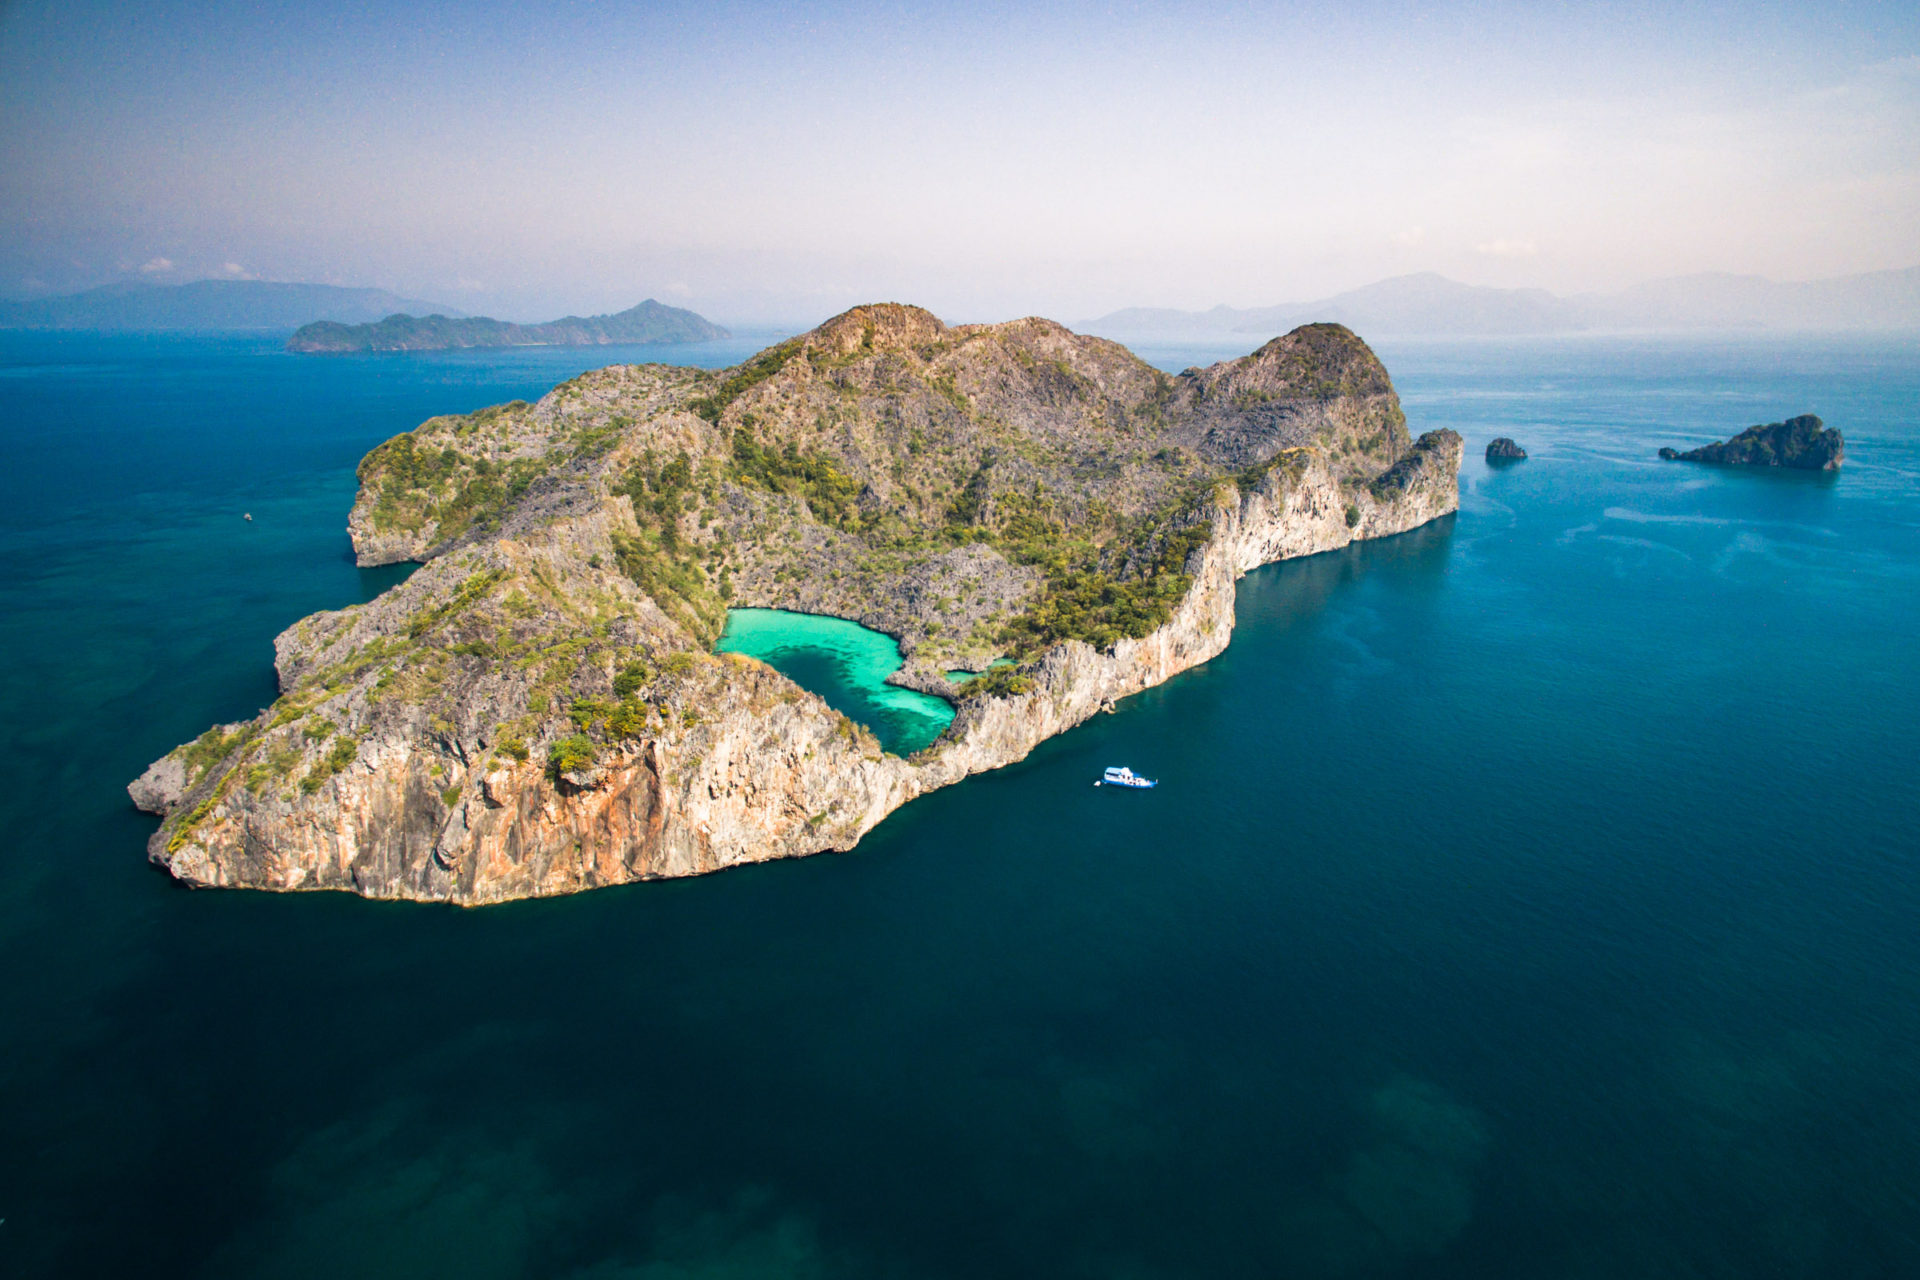 drone shop with Mergui Archipelago on Arte European Foodmarkets In The Belly Of Freiburg together with Mergui Archipelago together with Langkawi Beach From Above also Drone Warning Sign furthermore V ire Knight Senri Shiki X Reader Request 383961029.